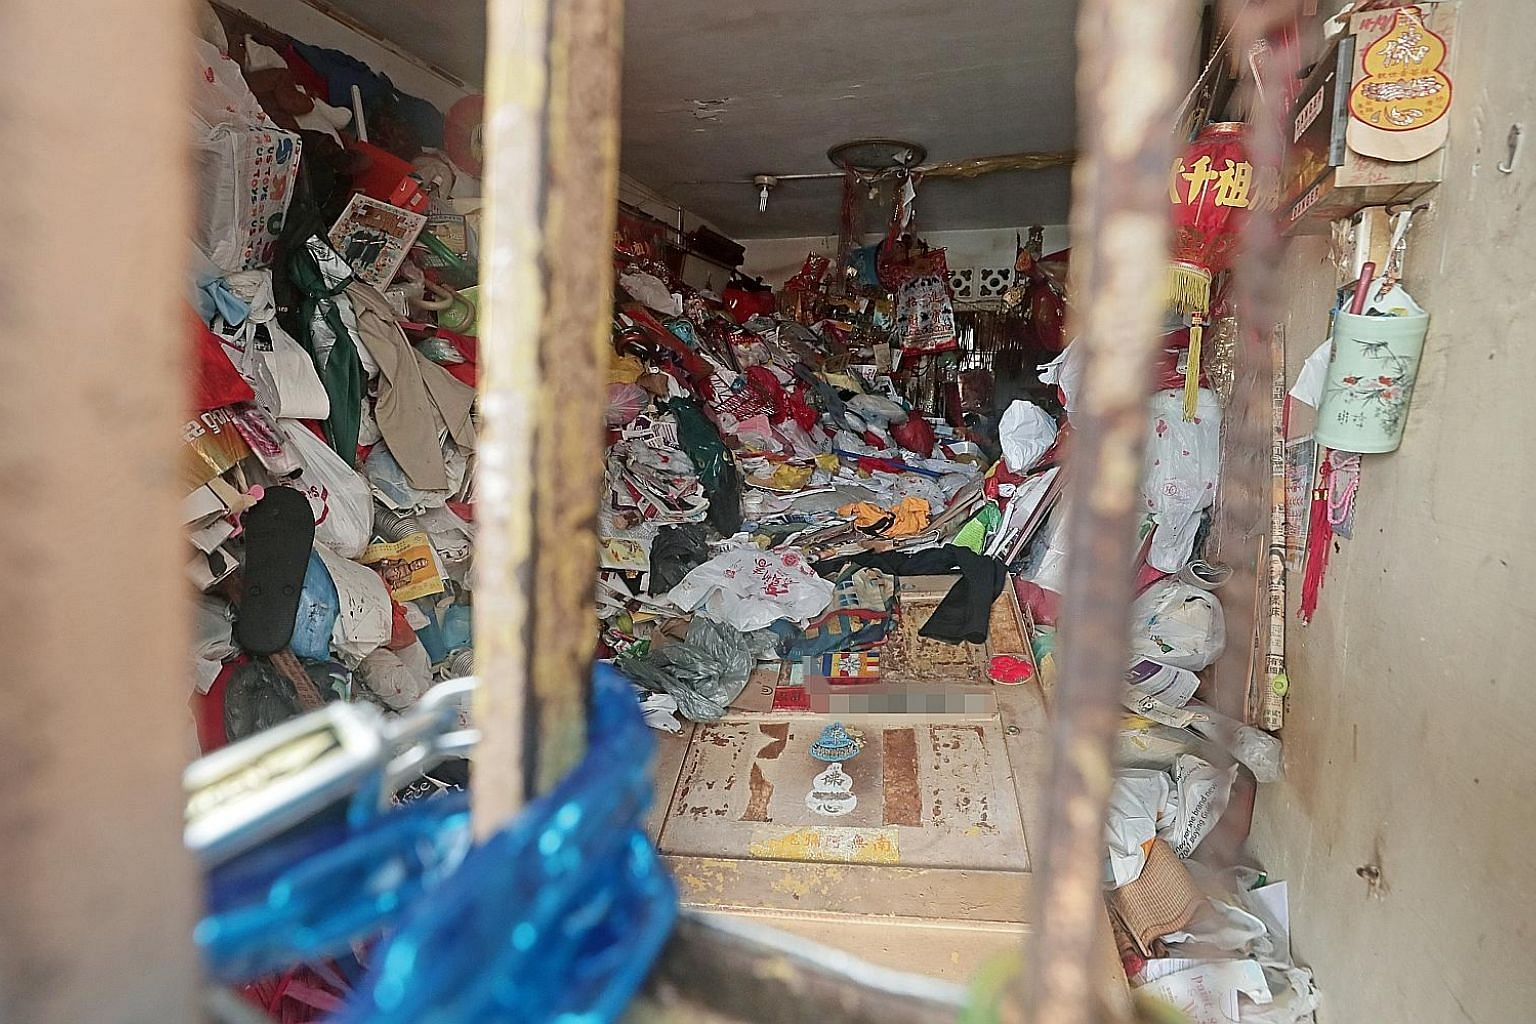 In September, a hoarder was found dead in a Bedok North flat amid piles of rubbish. Neighbours interviewed said the man lived alone, after his wife and two children, fed up with his hoarding habits, moved out many years ago.